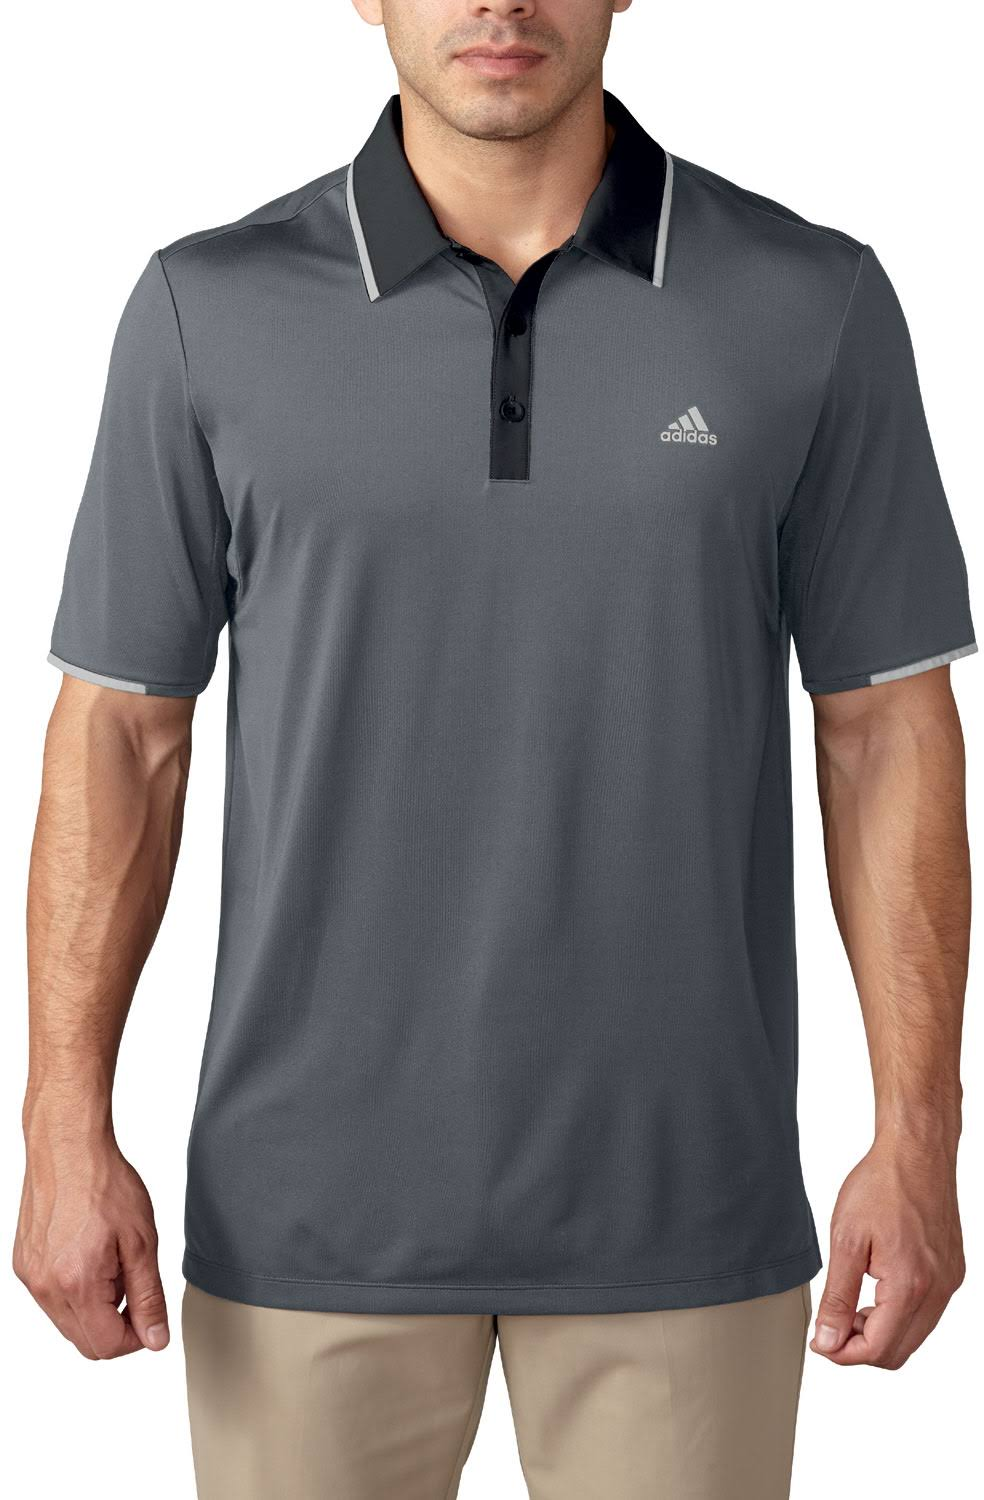 Adidas Golf ClimaCool Branded Performance Polo Shirt Pick Size & Color;  Picture 2 of 2